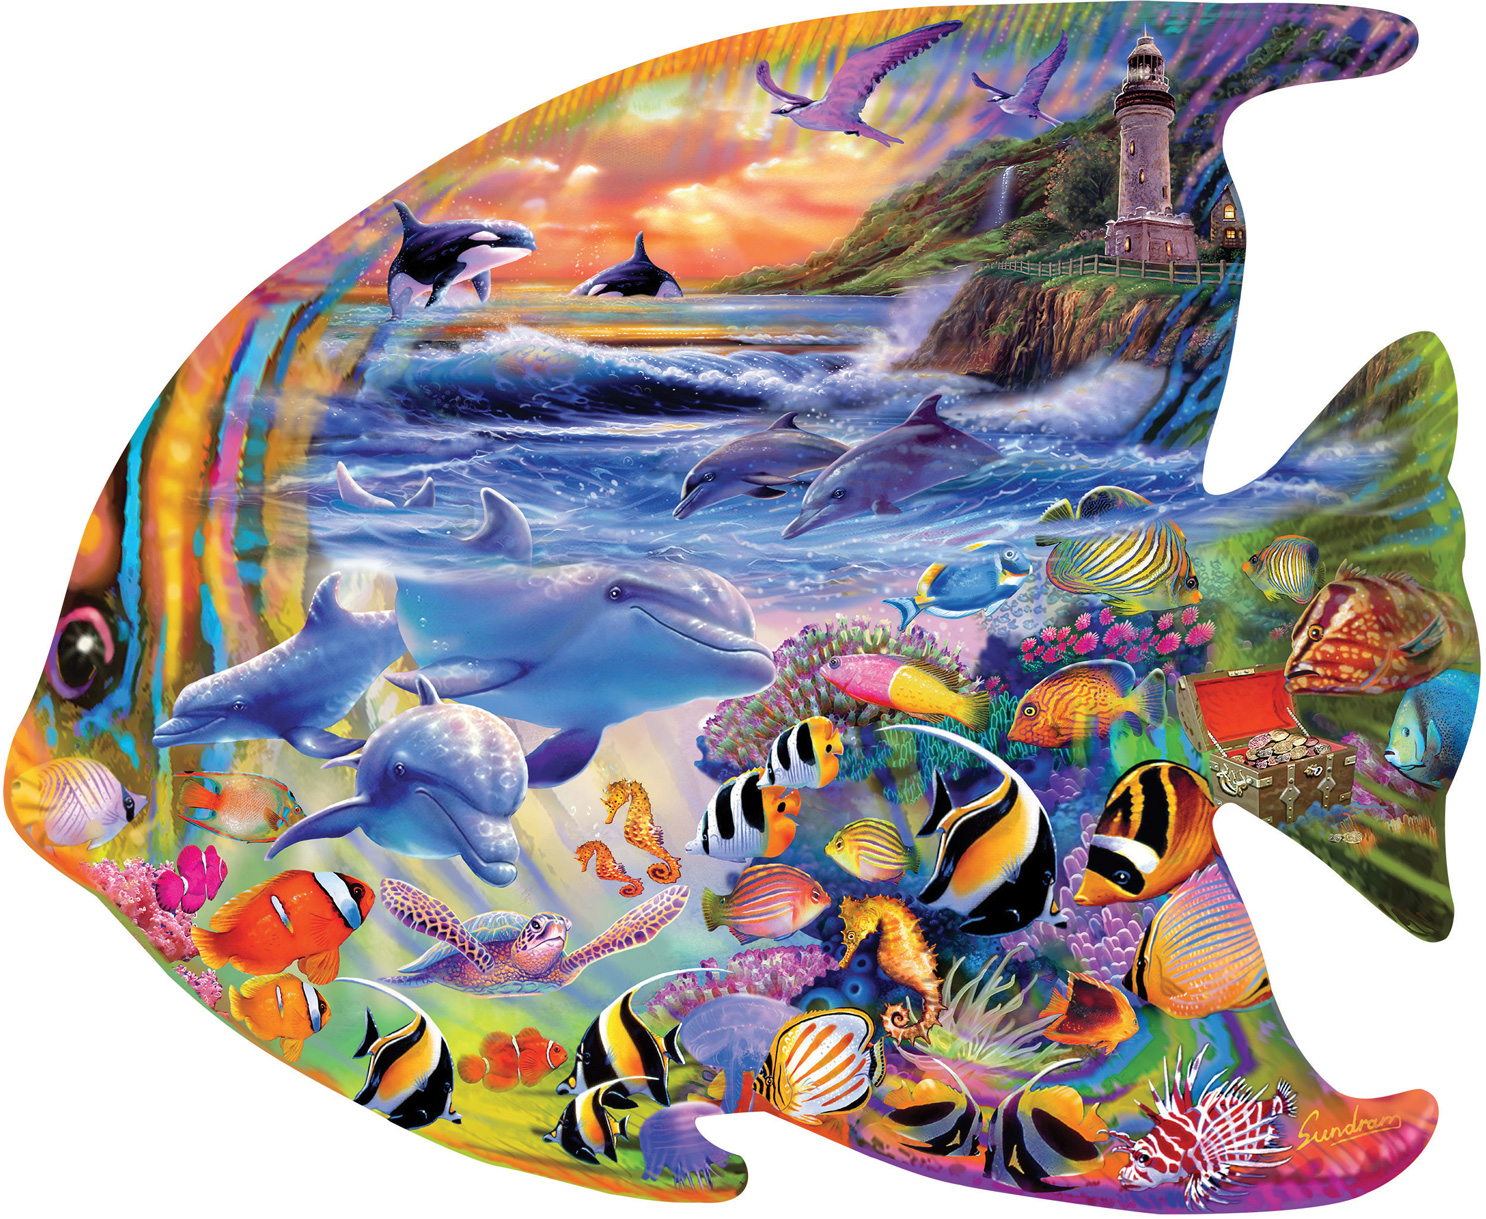 Fish Under The Sea Shaped Puzzle